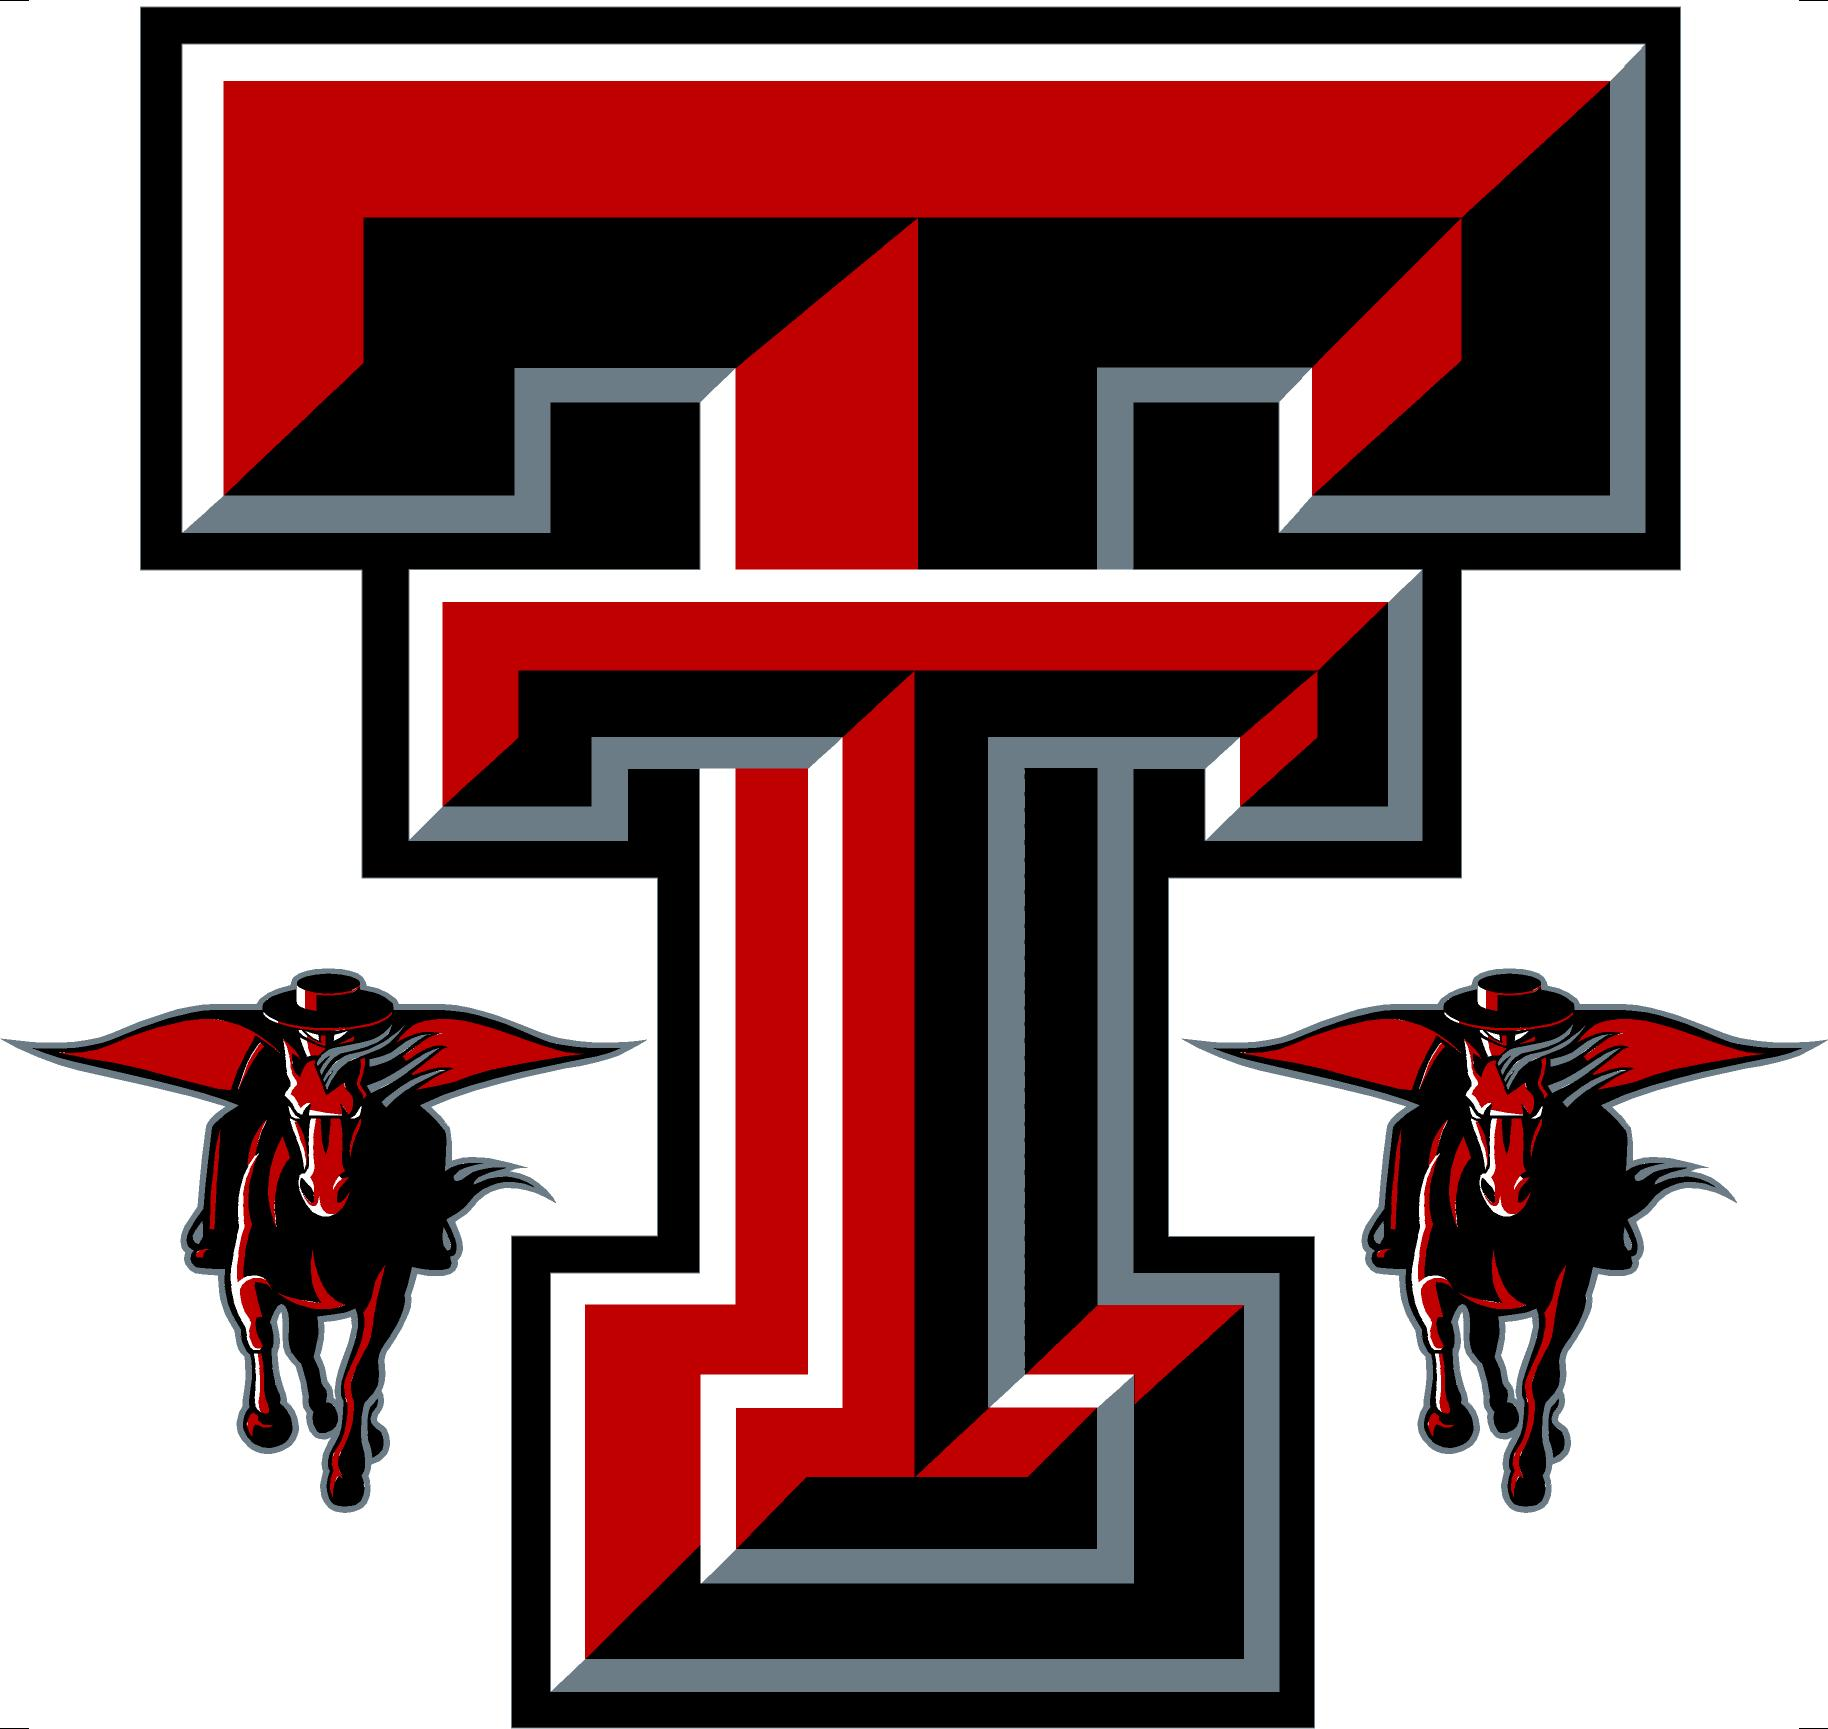 texas tech logo2.jpg